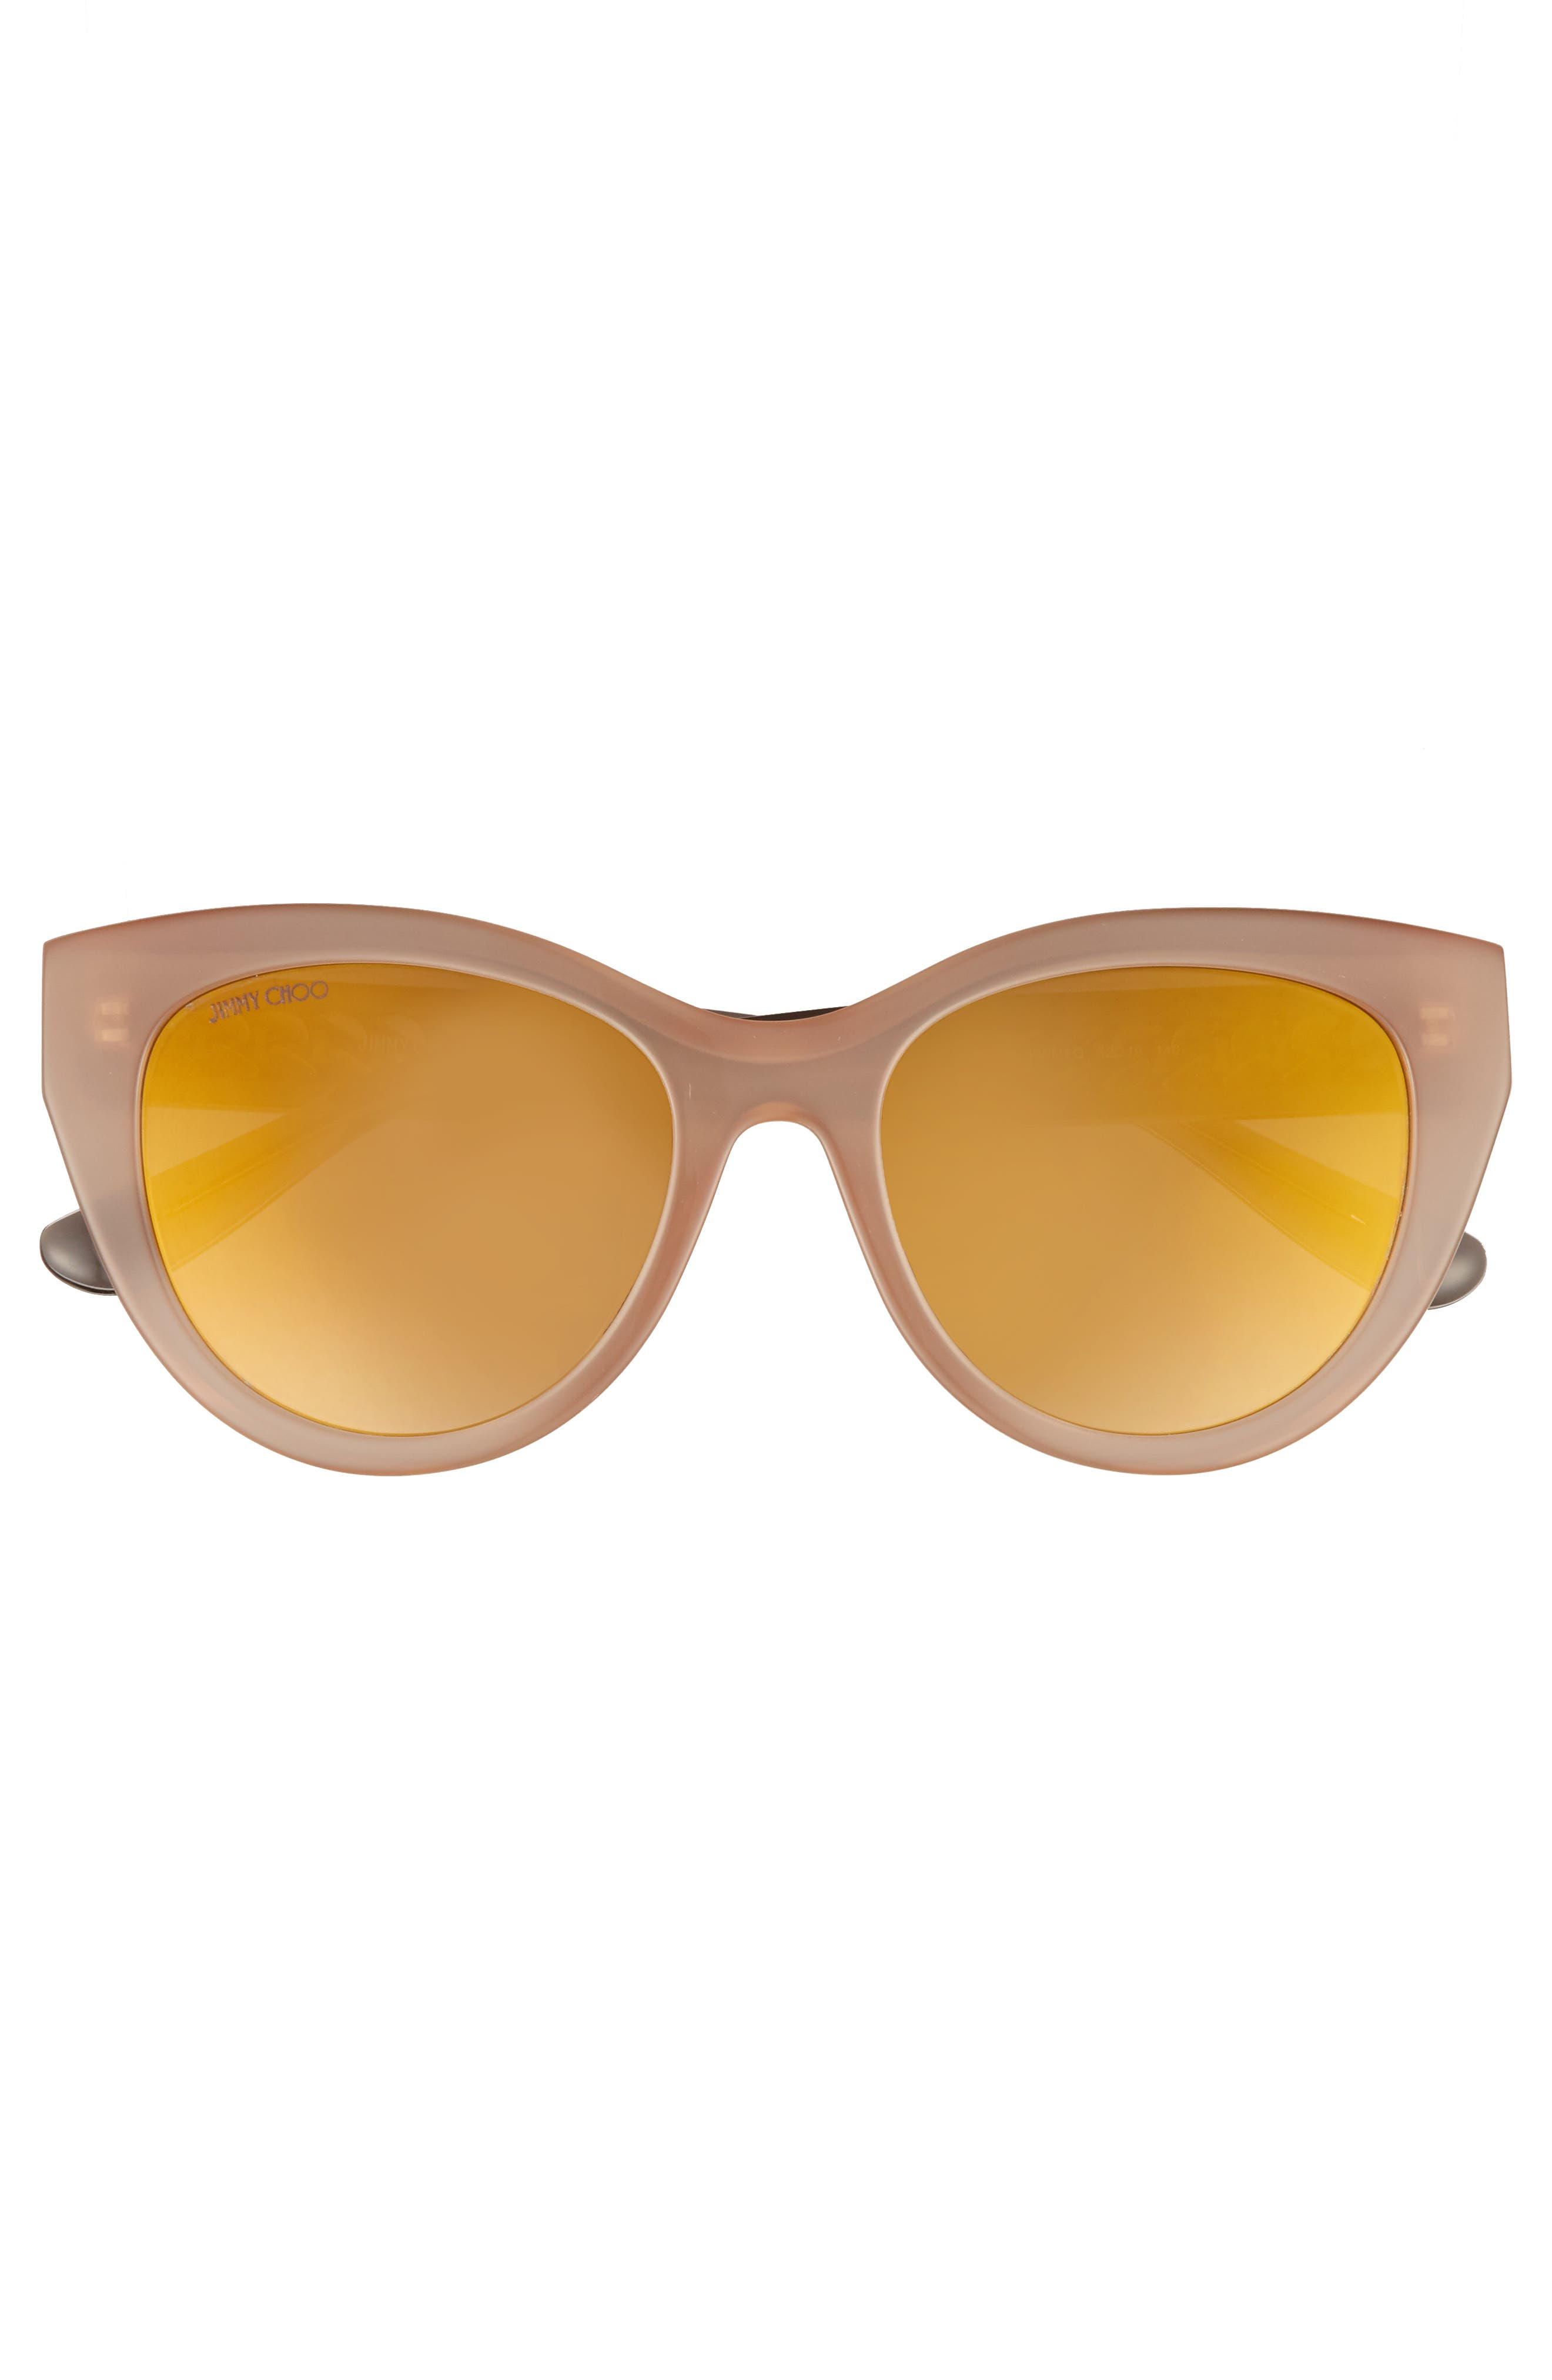 Chana 52mm Gradient Sunglasses,                             Alternate thumbnail 9, color,